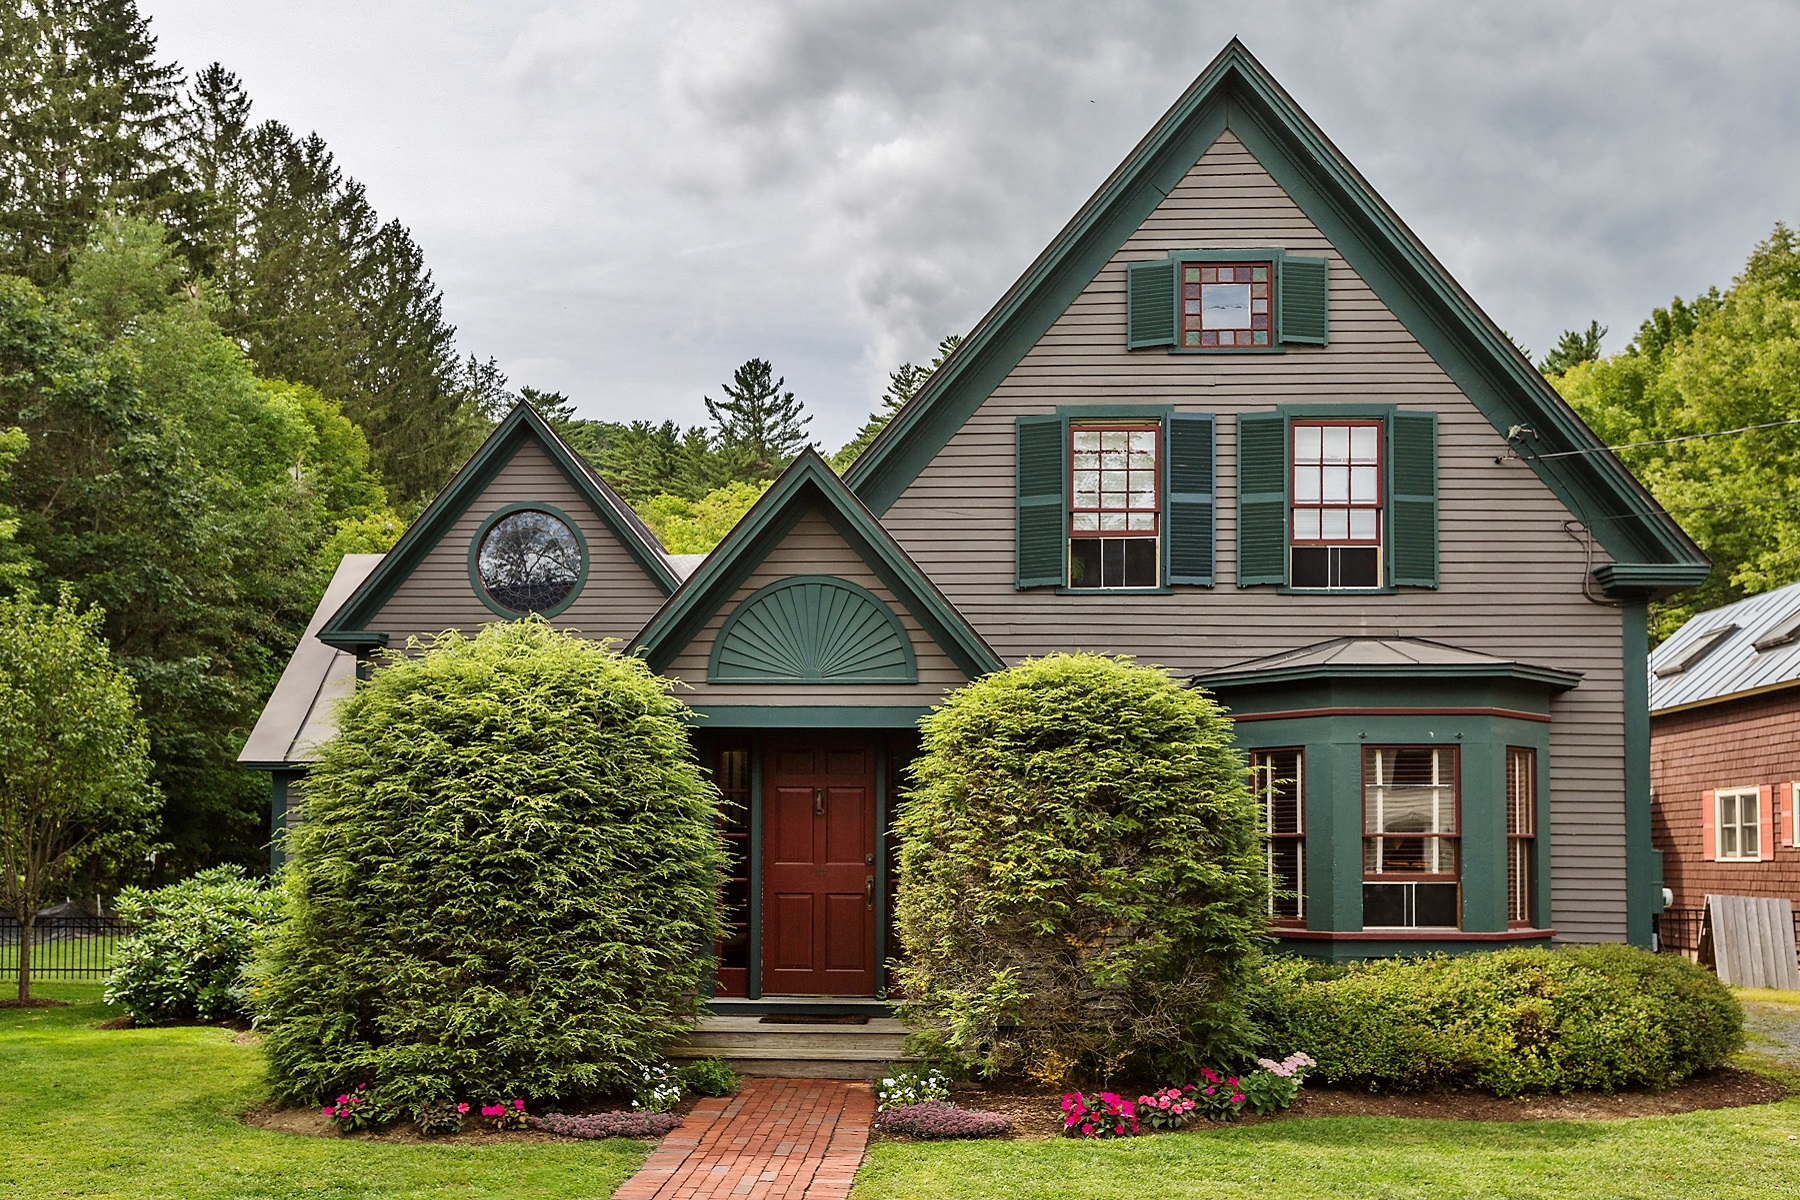 Single Family Homes for Sale at Historic Woodstock Village Home 13 River Street Woodstock, Vermont 05091 United States